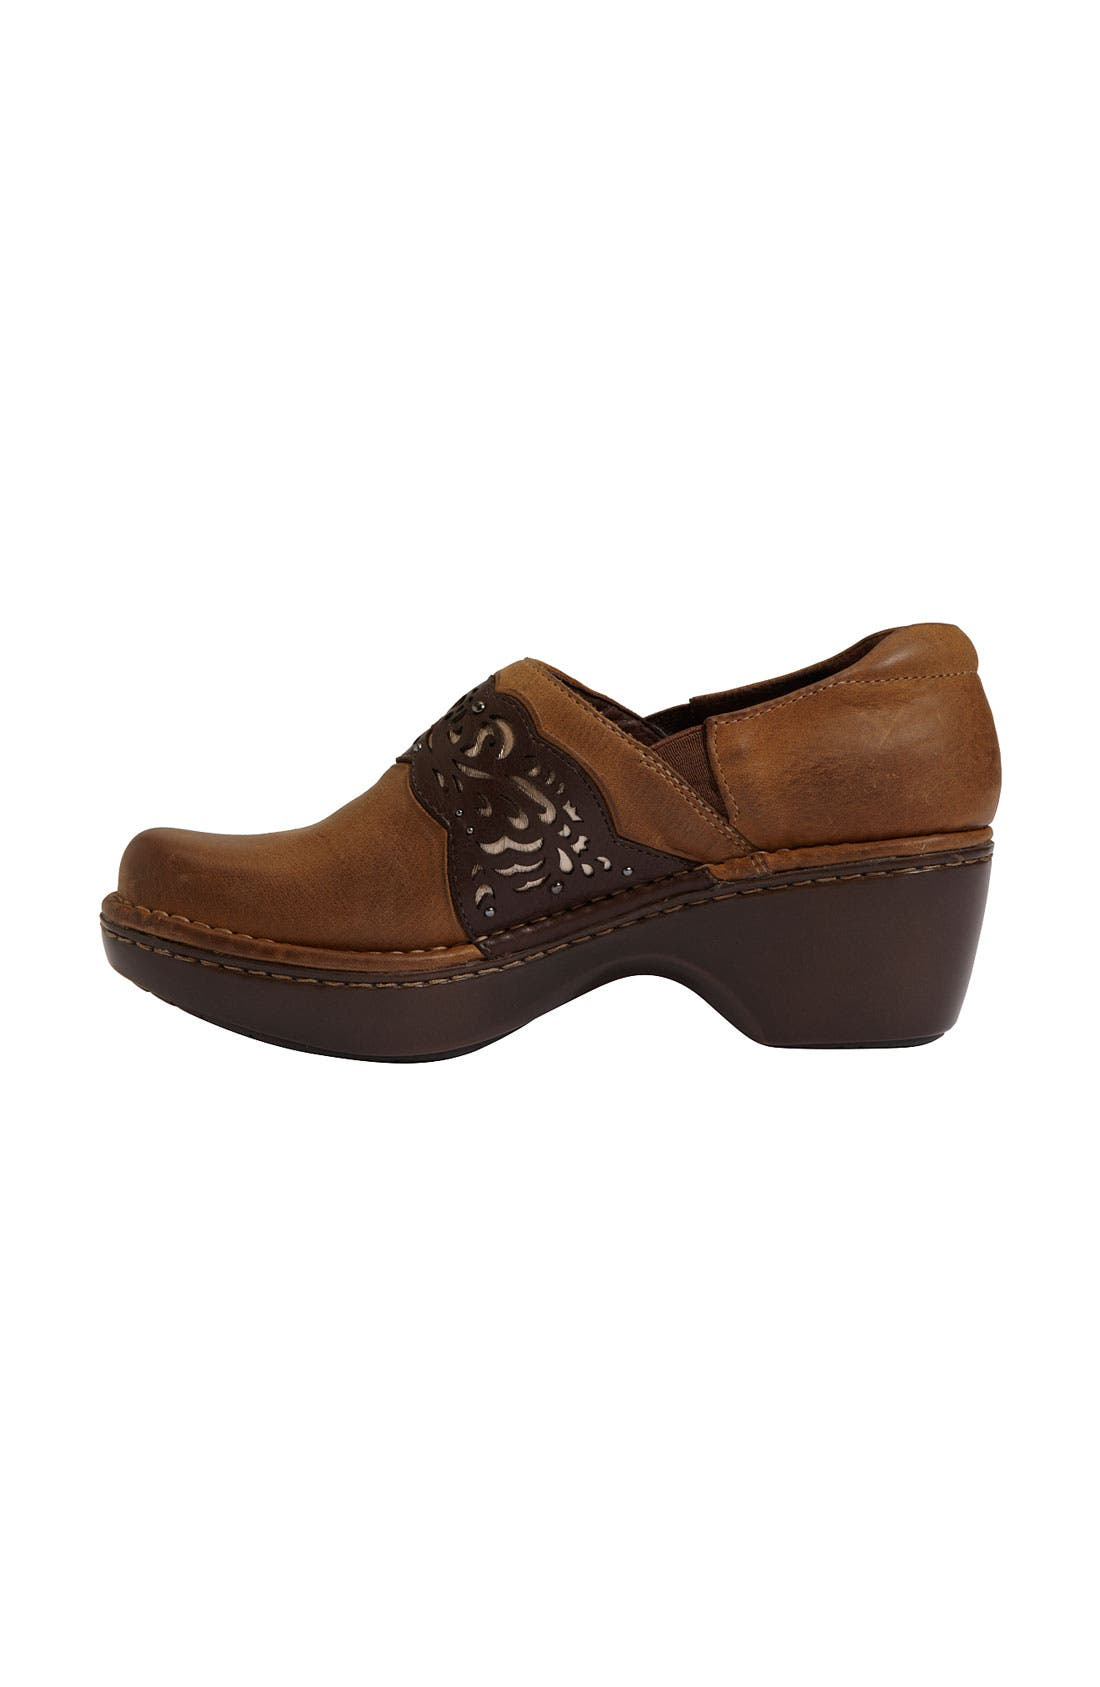 Alternate Image 2  - Ariat 'Tambour' Clog